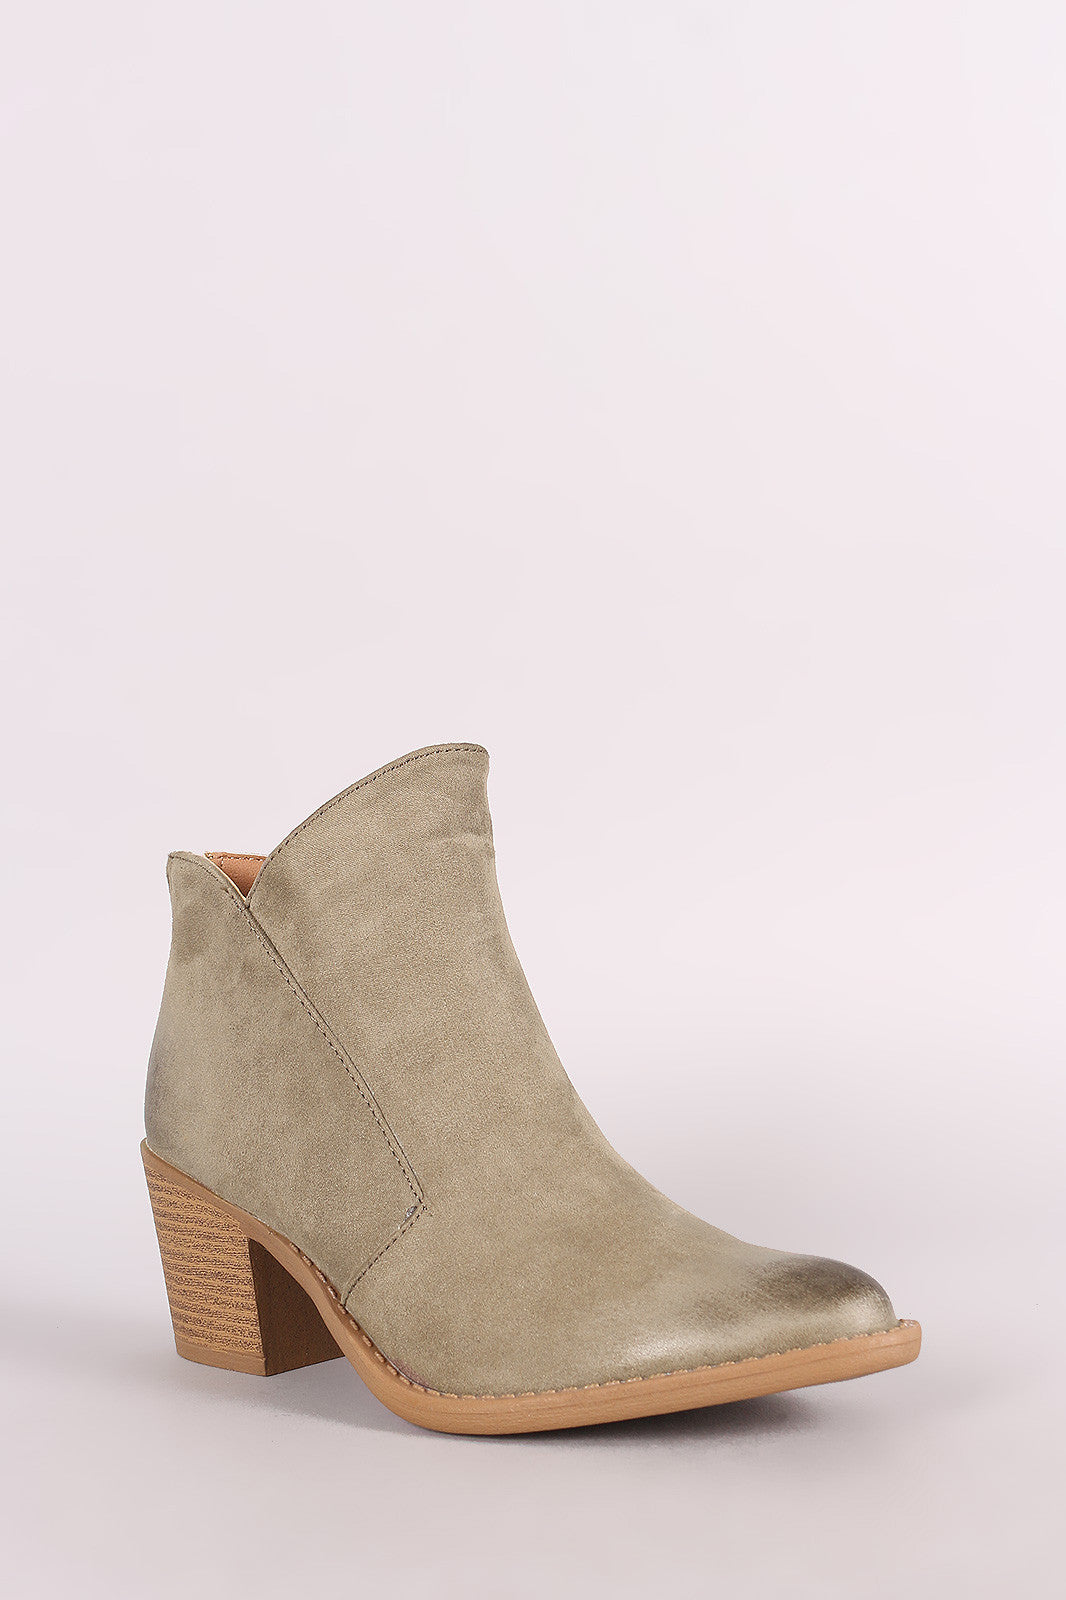 9371b963045 Qupid Oil Finished Almond Toe Chunky Heeled Western Cowgirl Booties